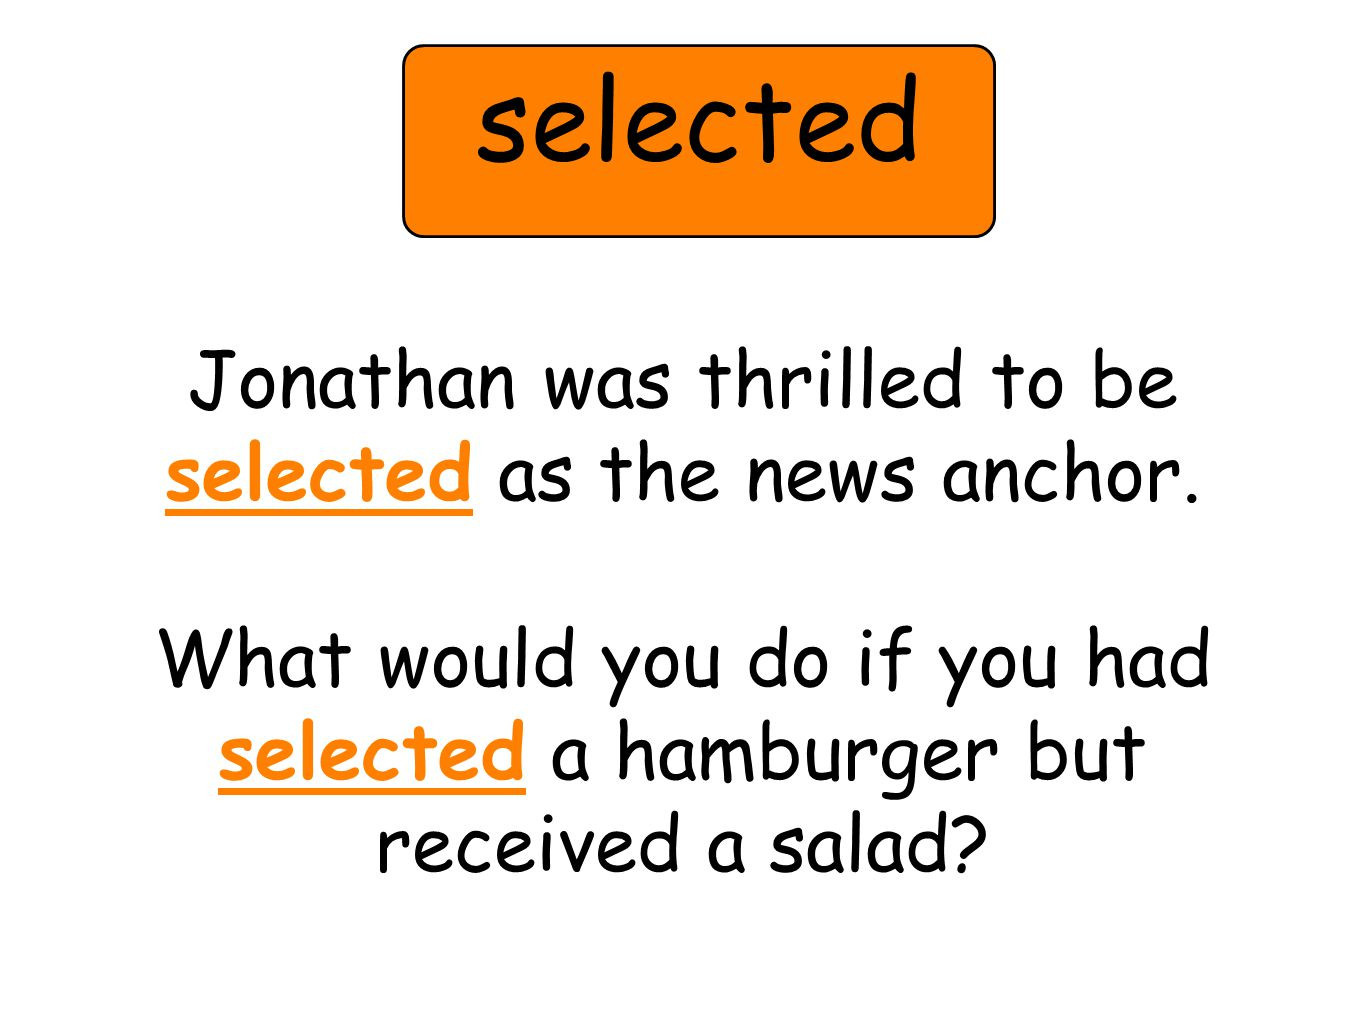 Jonathan was thrilled to be selected as the news anchor. What would you do if you had selected a hamburger but received a salad? selected